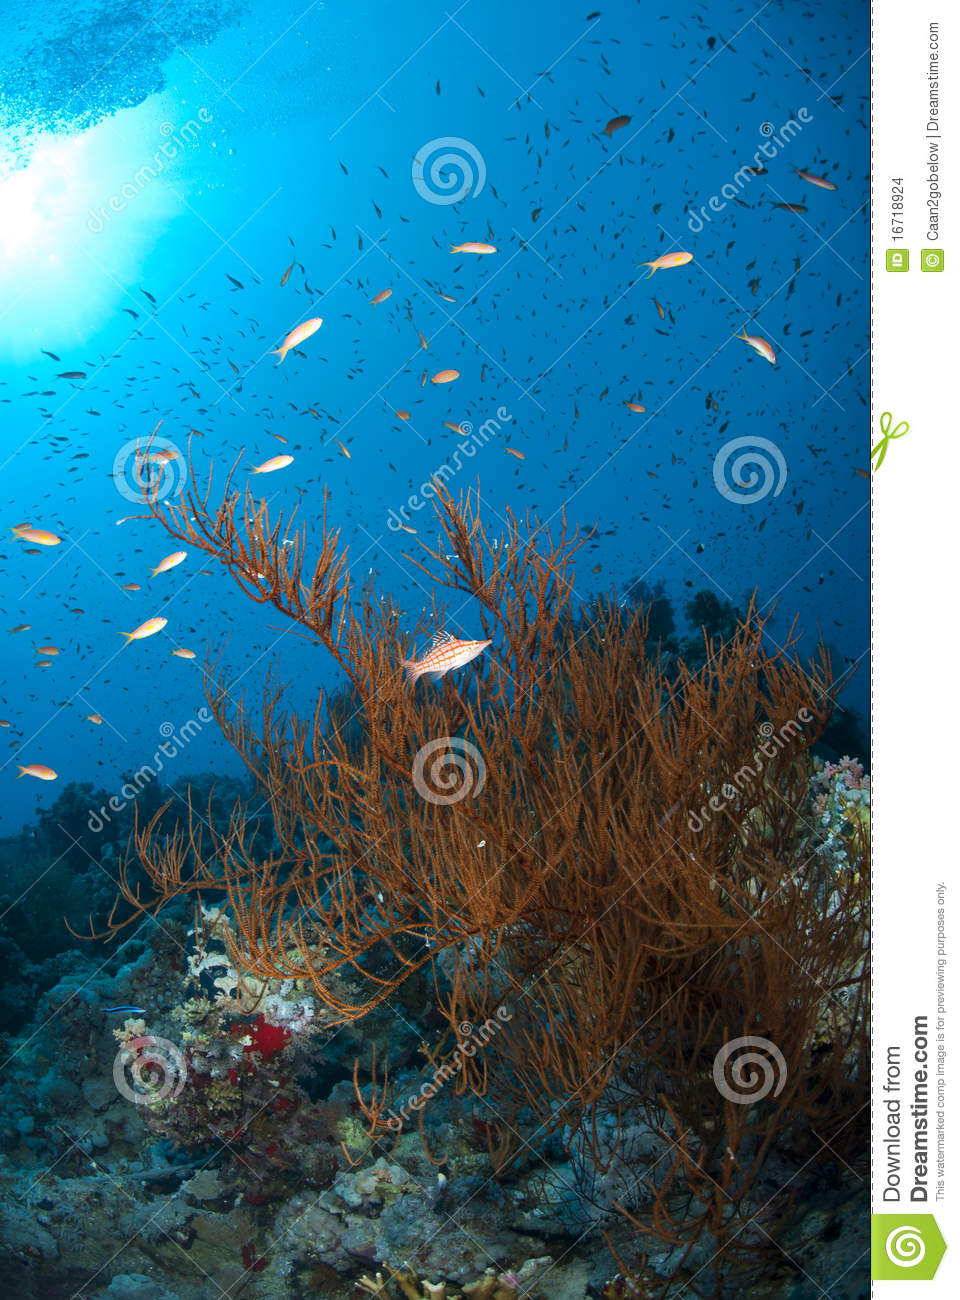 Branching black coral with a Longnose hawkfish.